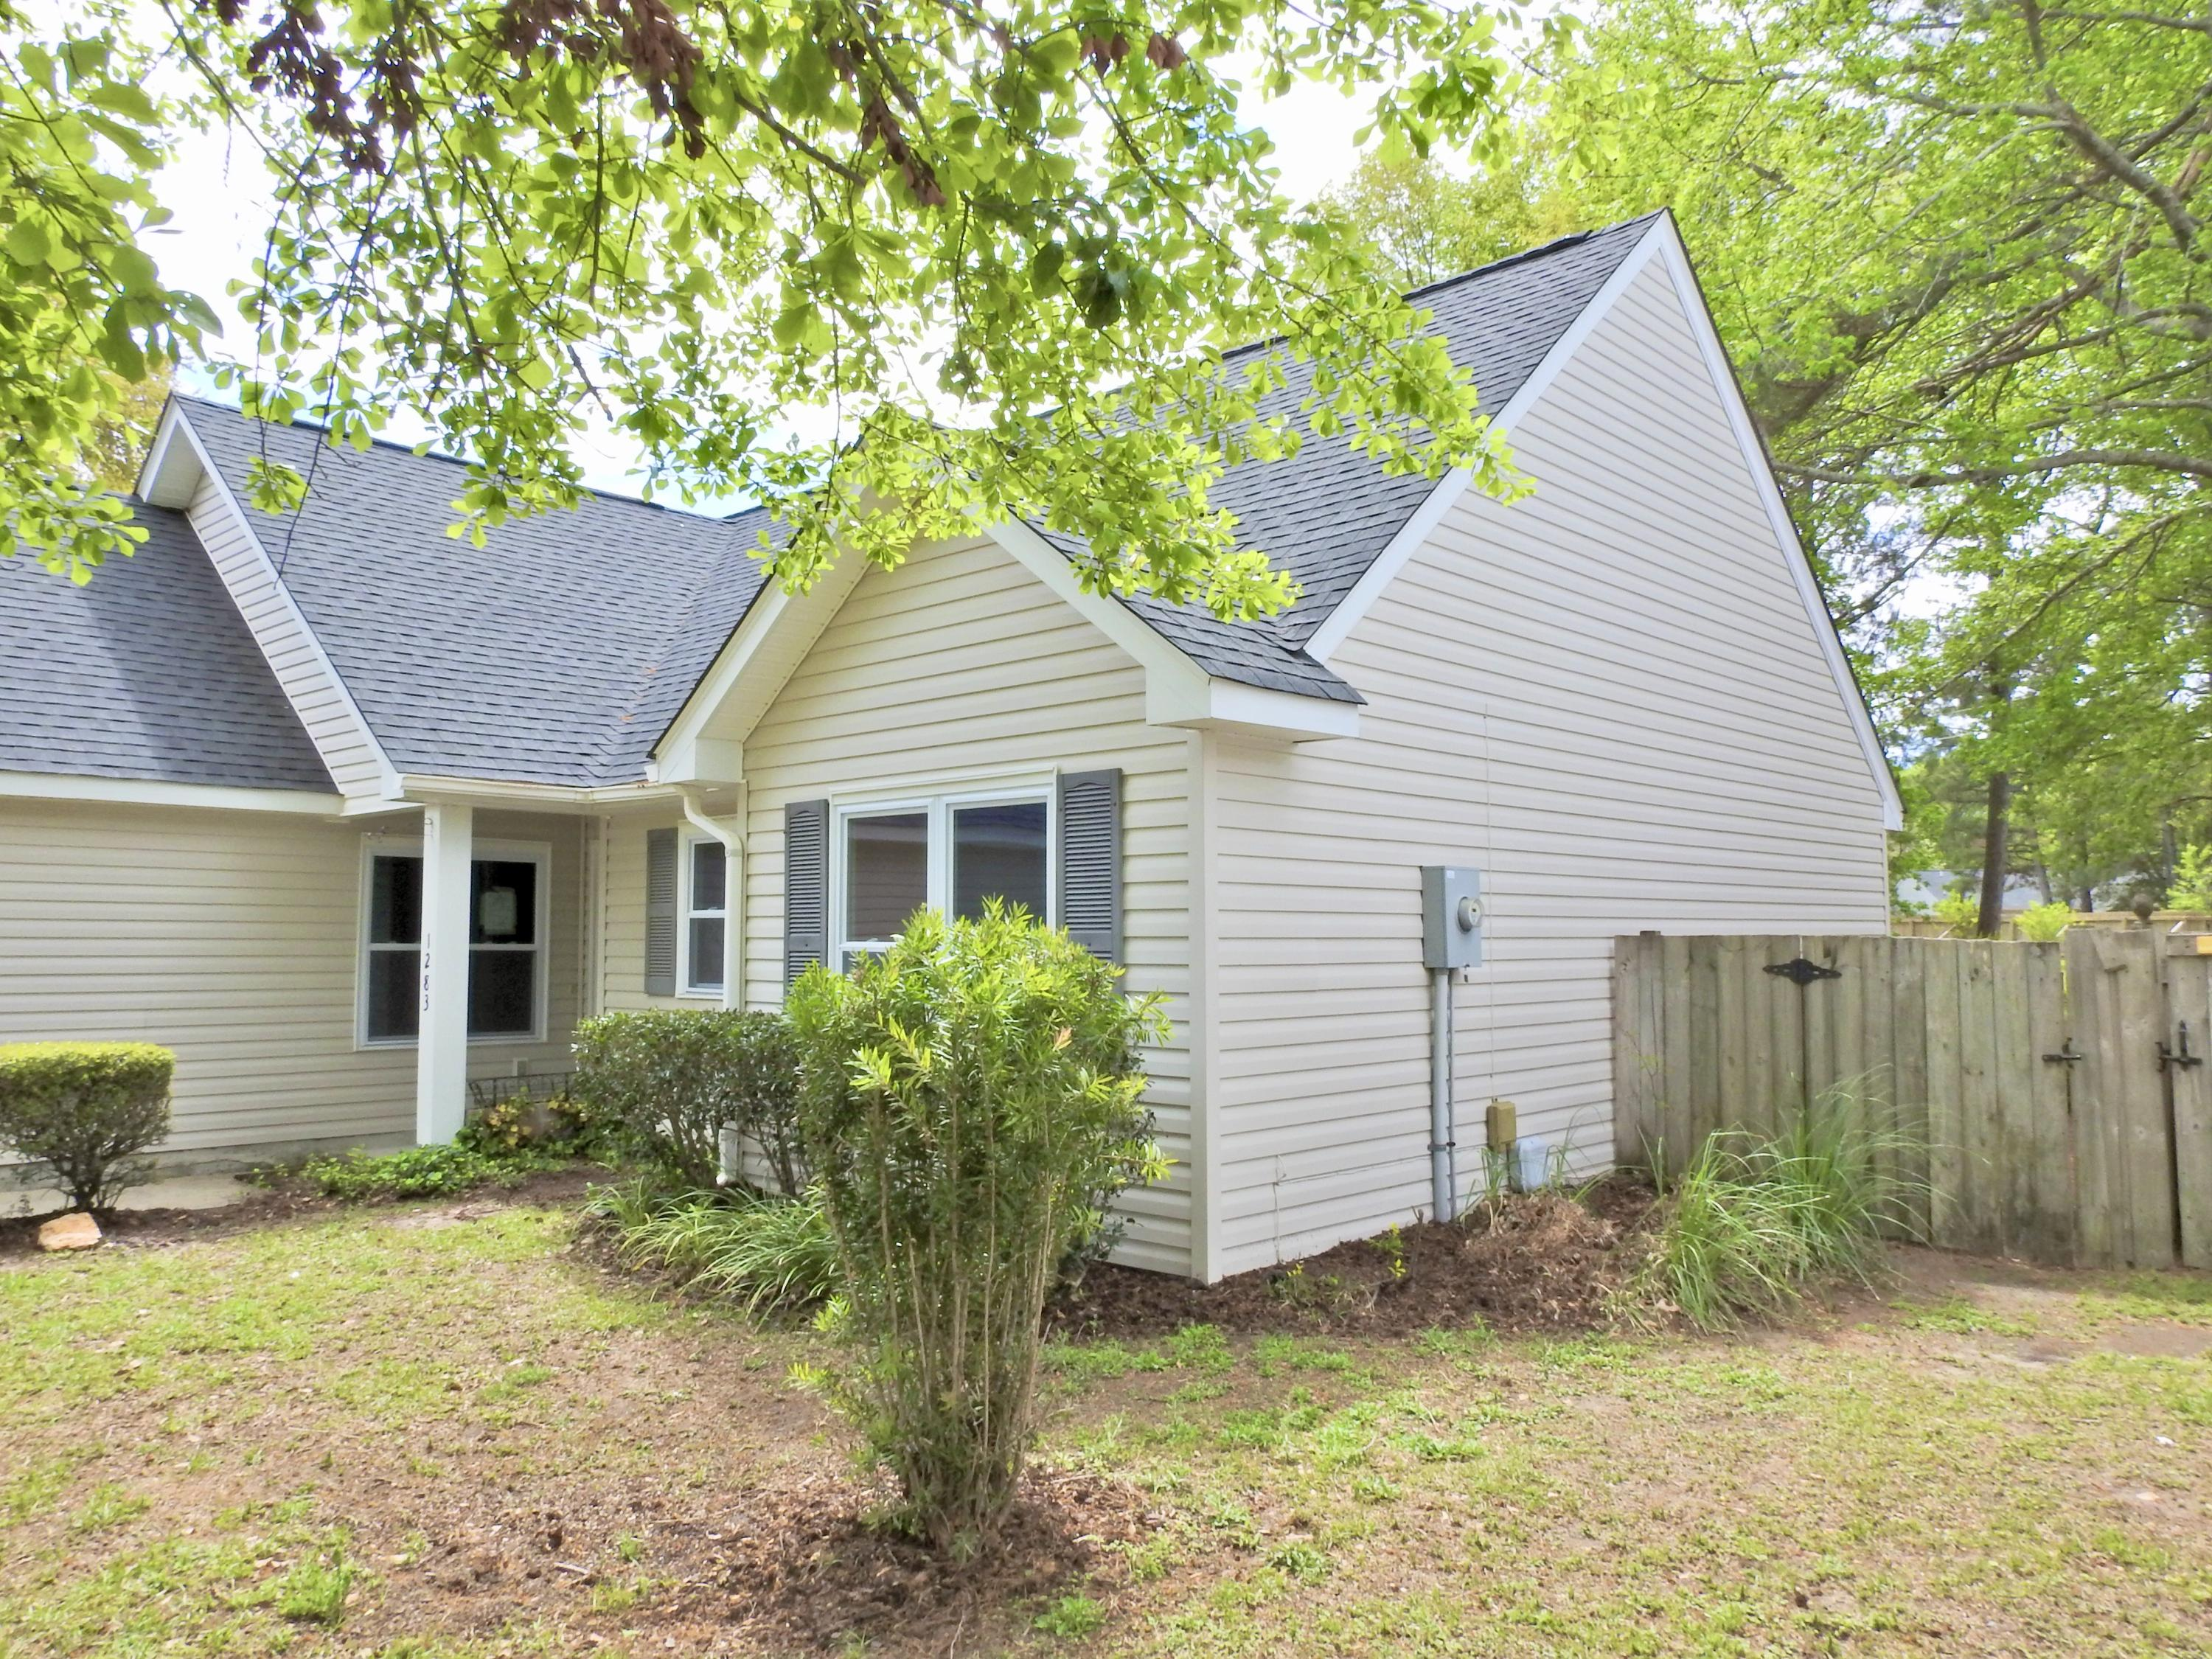 Ivy Hall Homes For Sale - 1283 Worthy, Mount Pleasant, SC - 12